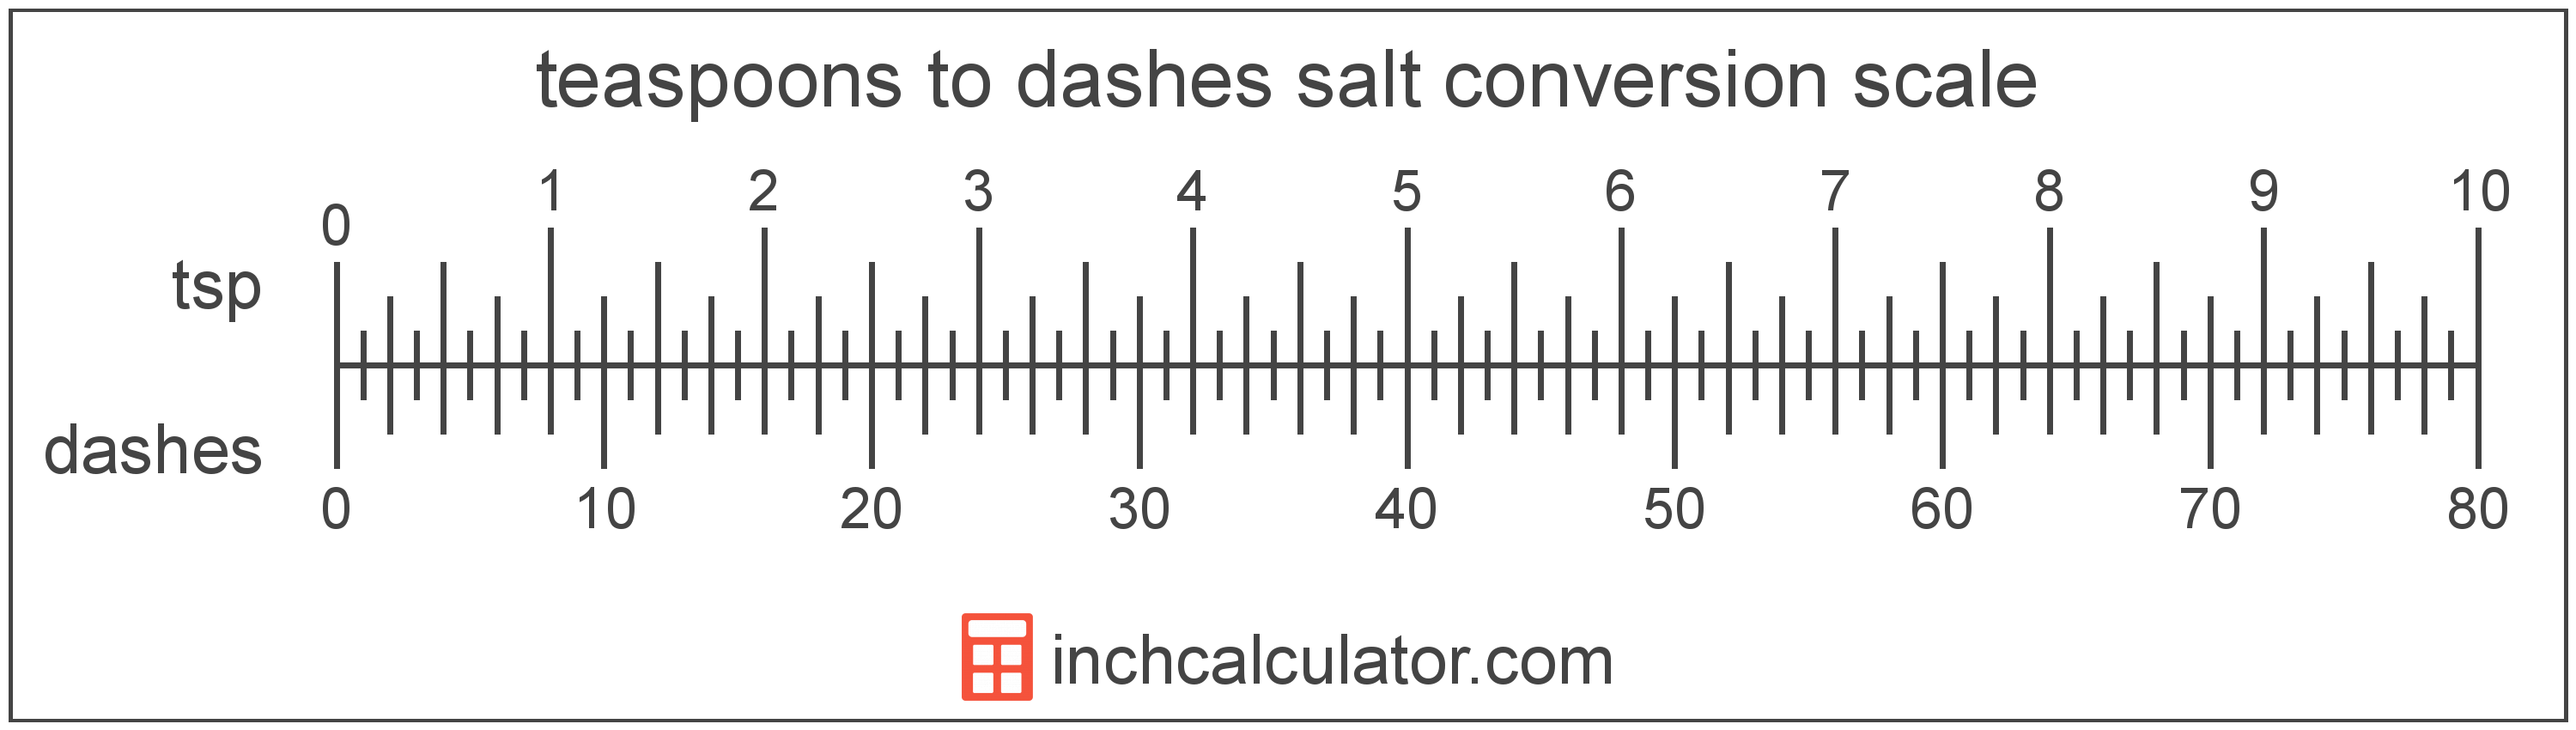 conversion scale showing teaspoons and equivalent dashes salt volume values